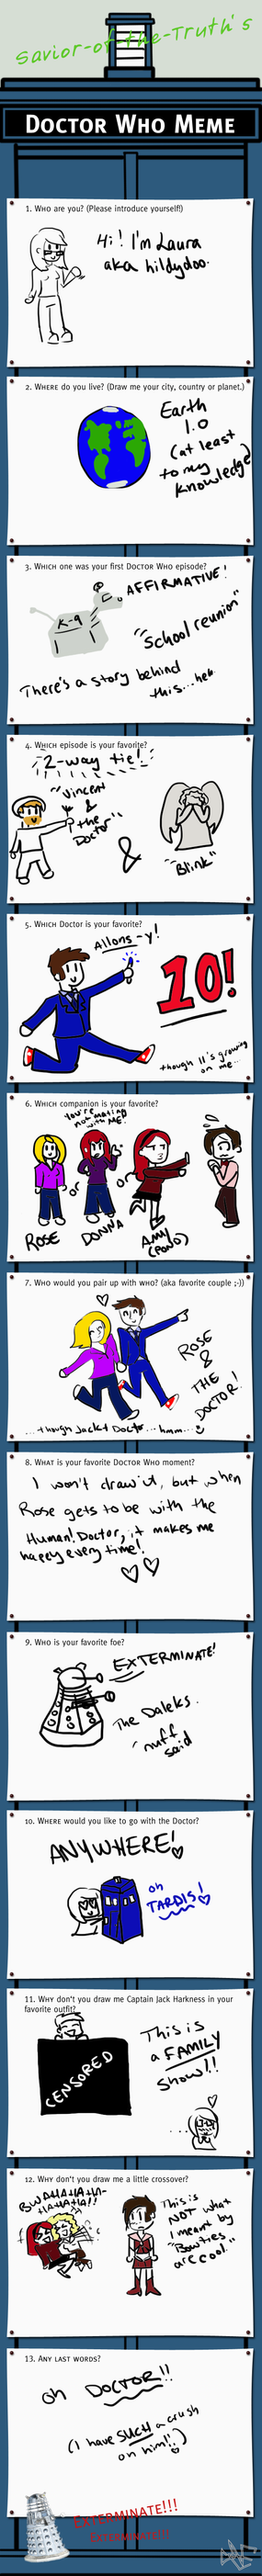 Doctor Who Meme by hildydoo